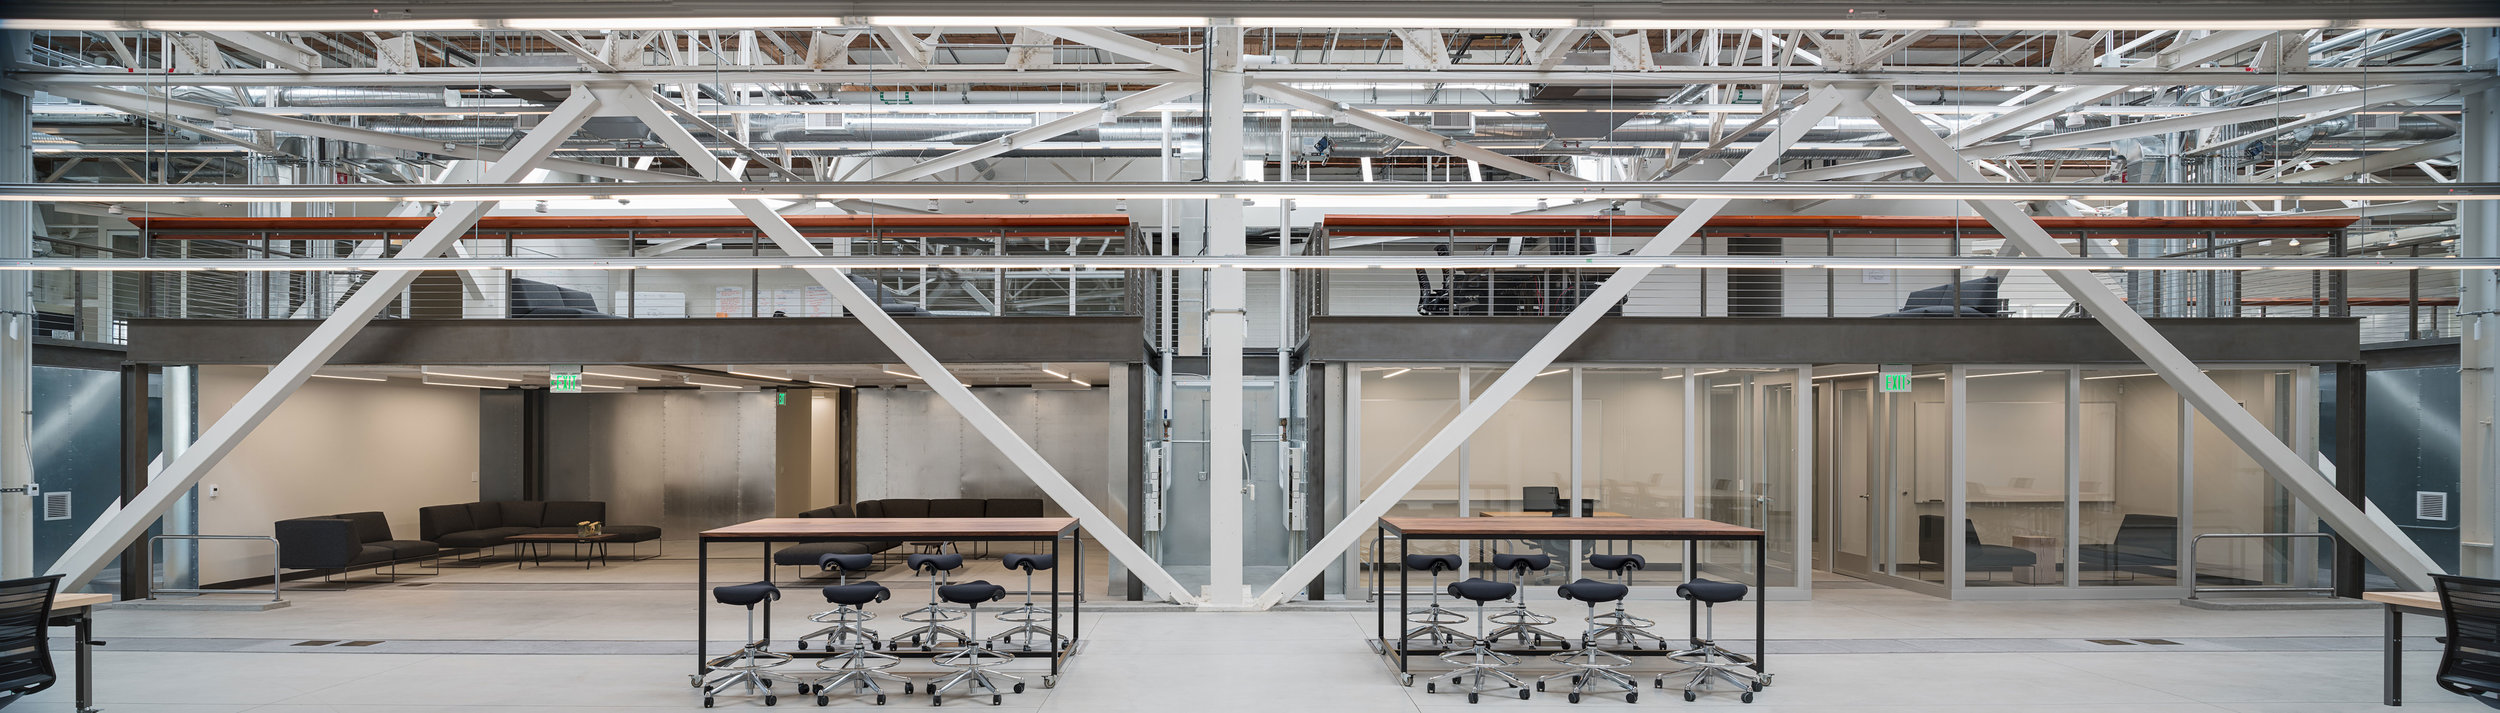 San Francisco Workplace, Office, Adaptive Reuse, Sustainability, Tech Company, Innovation